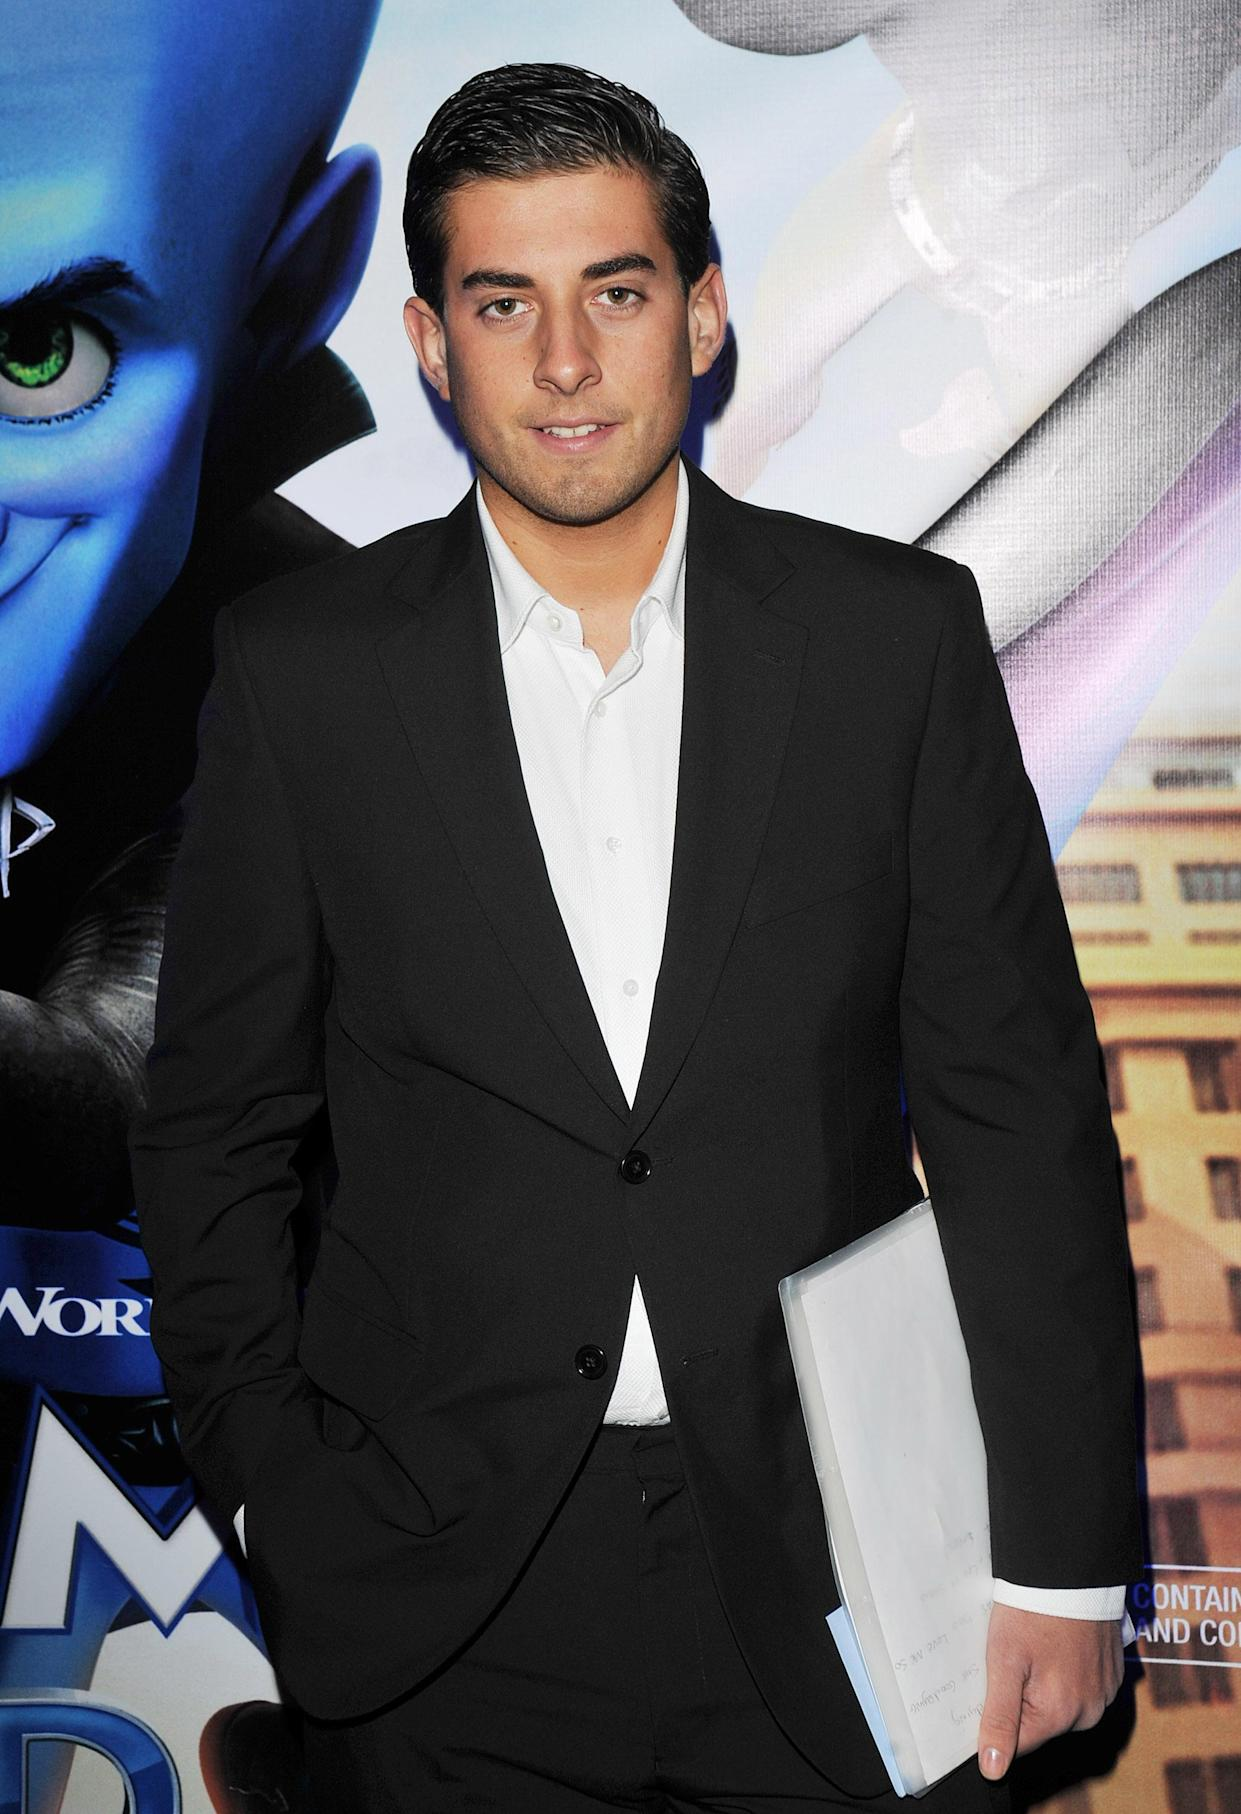 James Argent from TV show 'The Only Way Is Essex' attends the Megamind 3D Gala Screening at Vue West End on November 28, 2010 in London, England. *** Local Caption ***